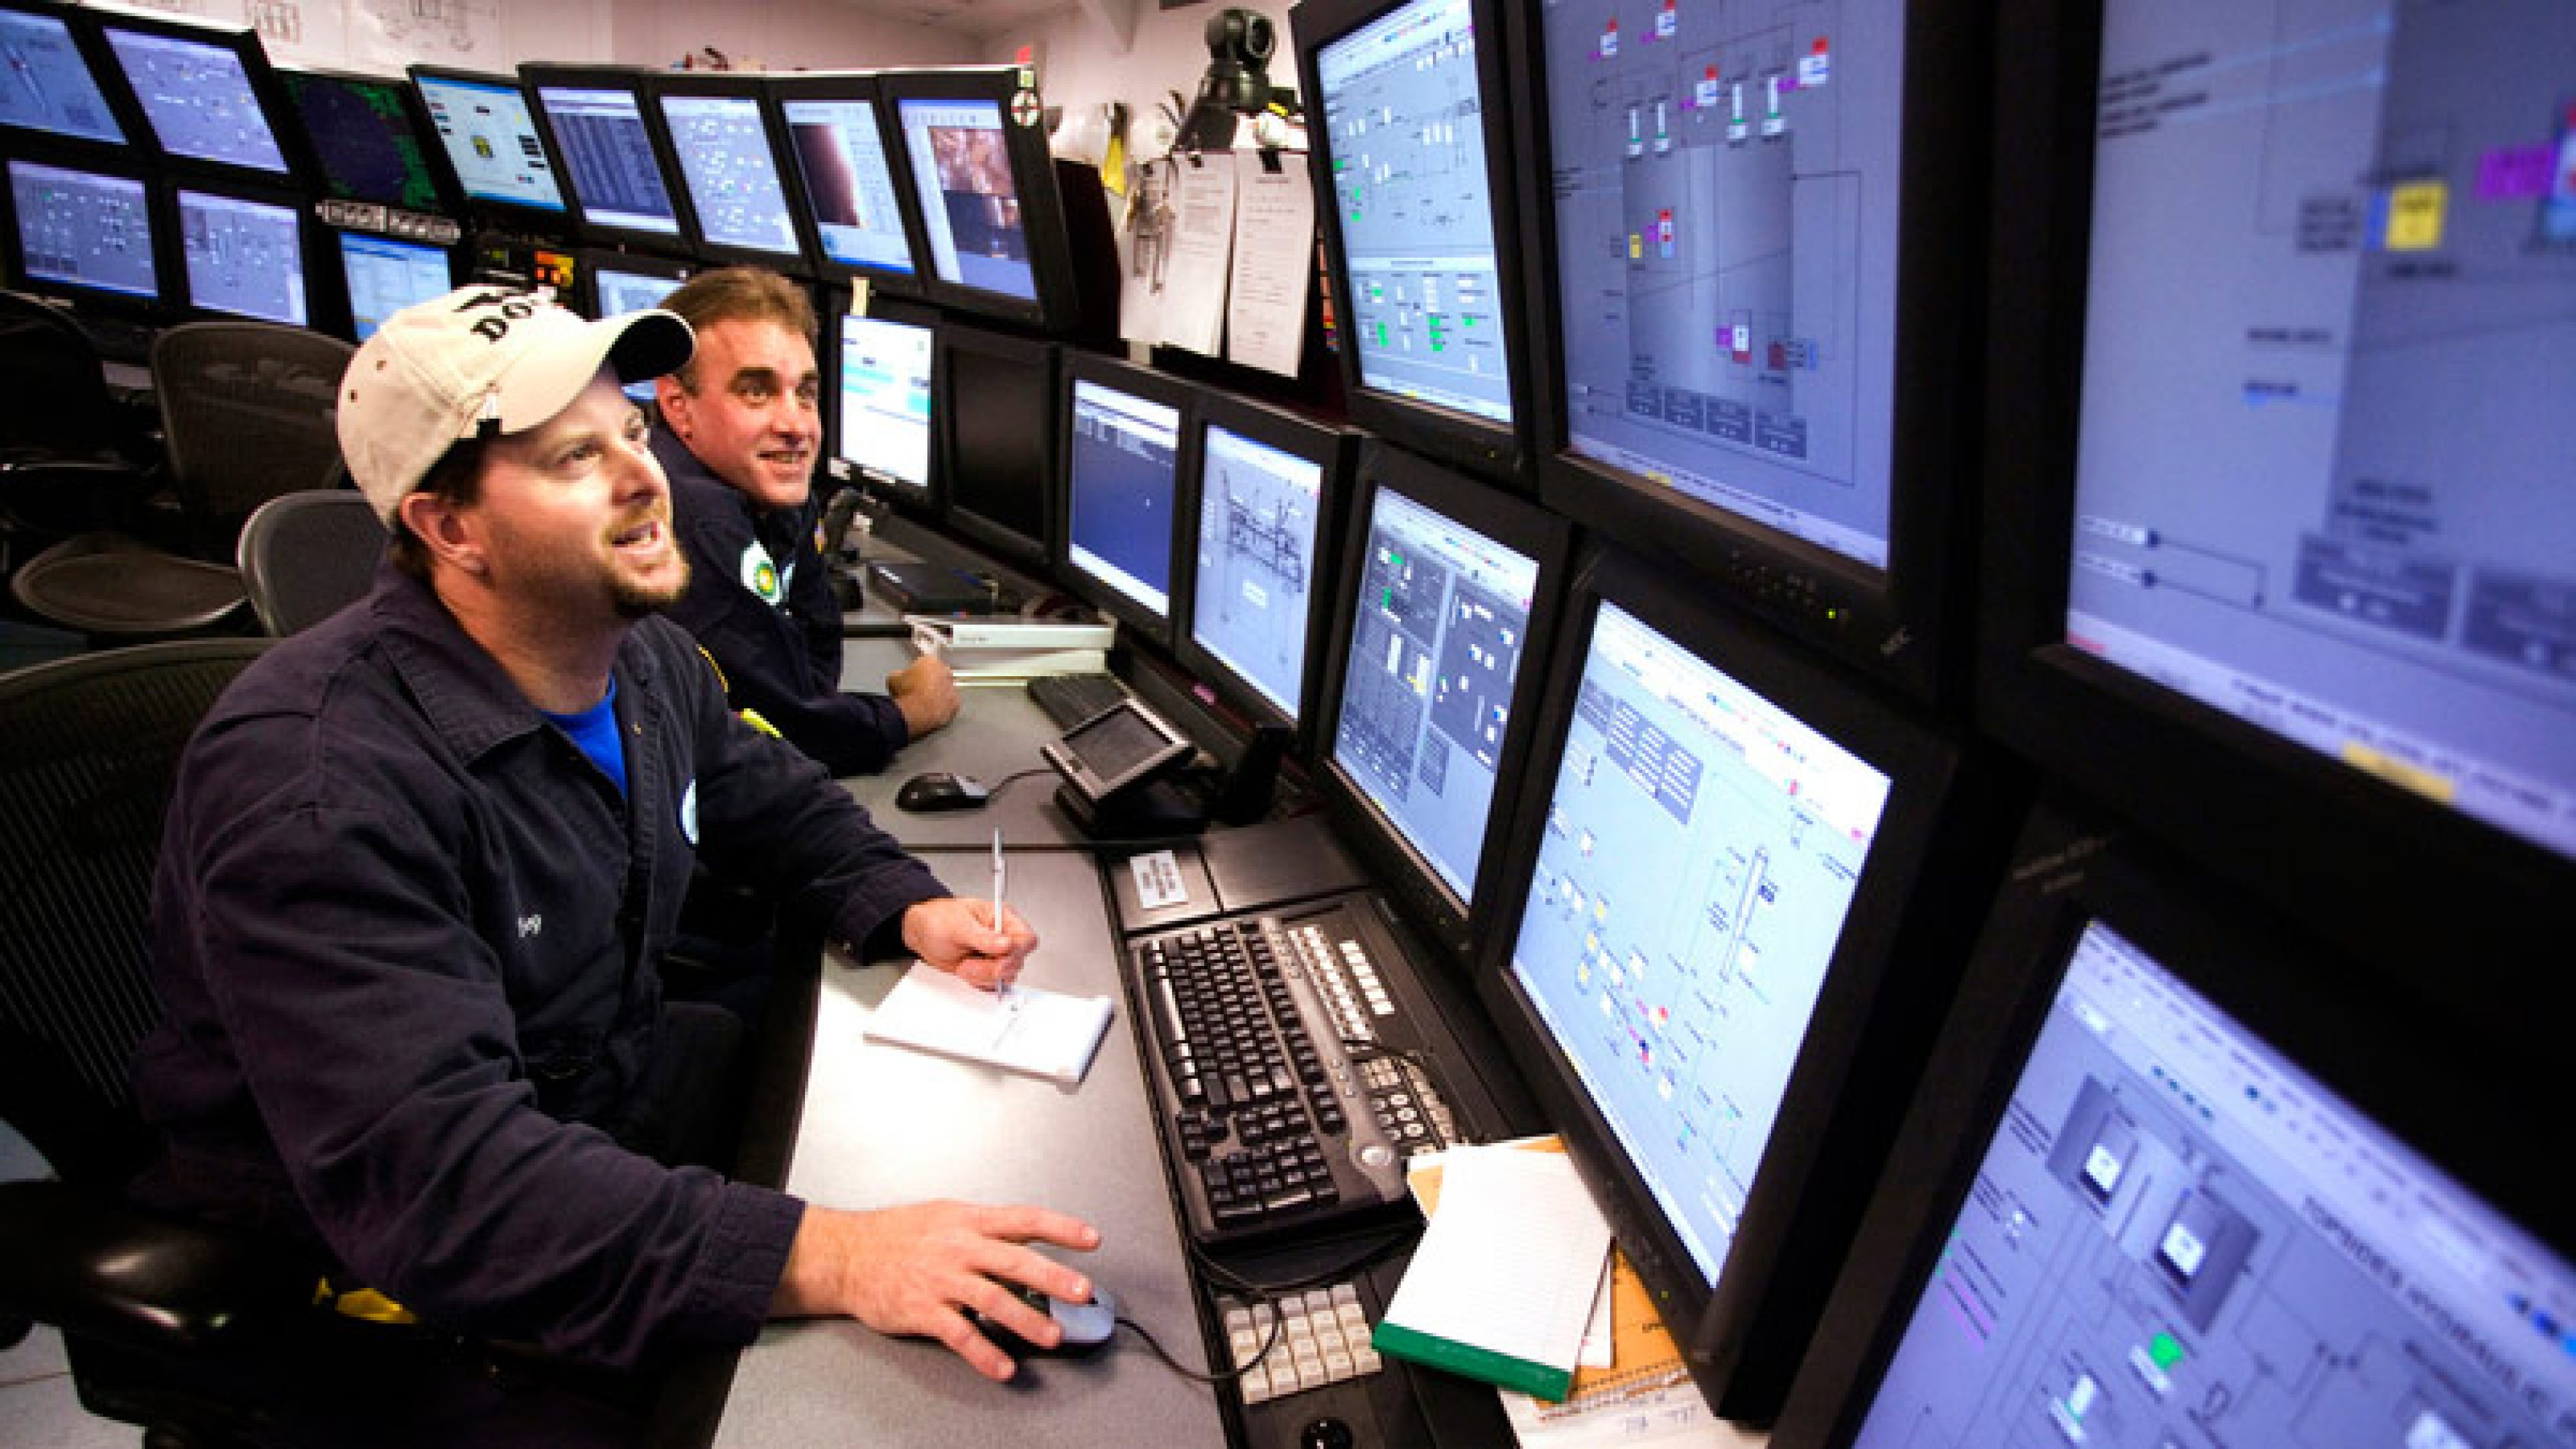 Technicians looking at mulitple screens displaying detailed information in the control room of the Atlantis platform in the Gulf of Mexico, USA